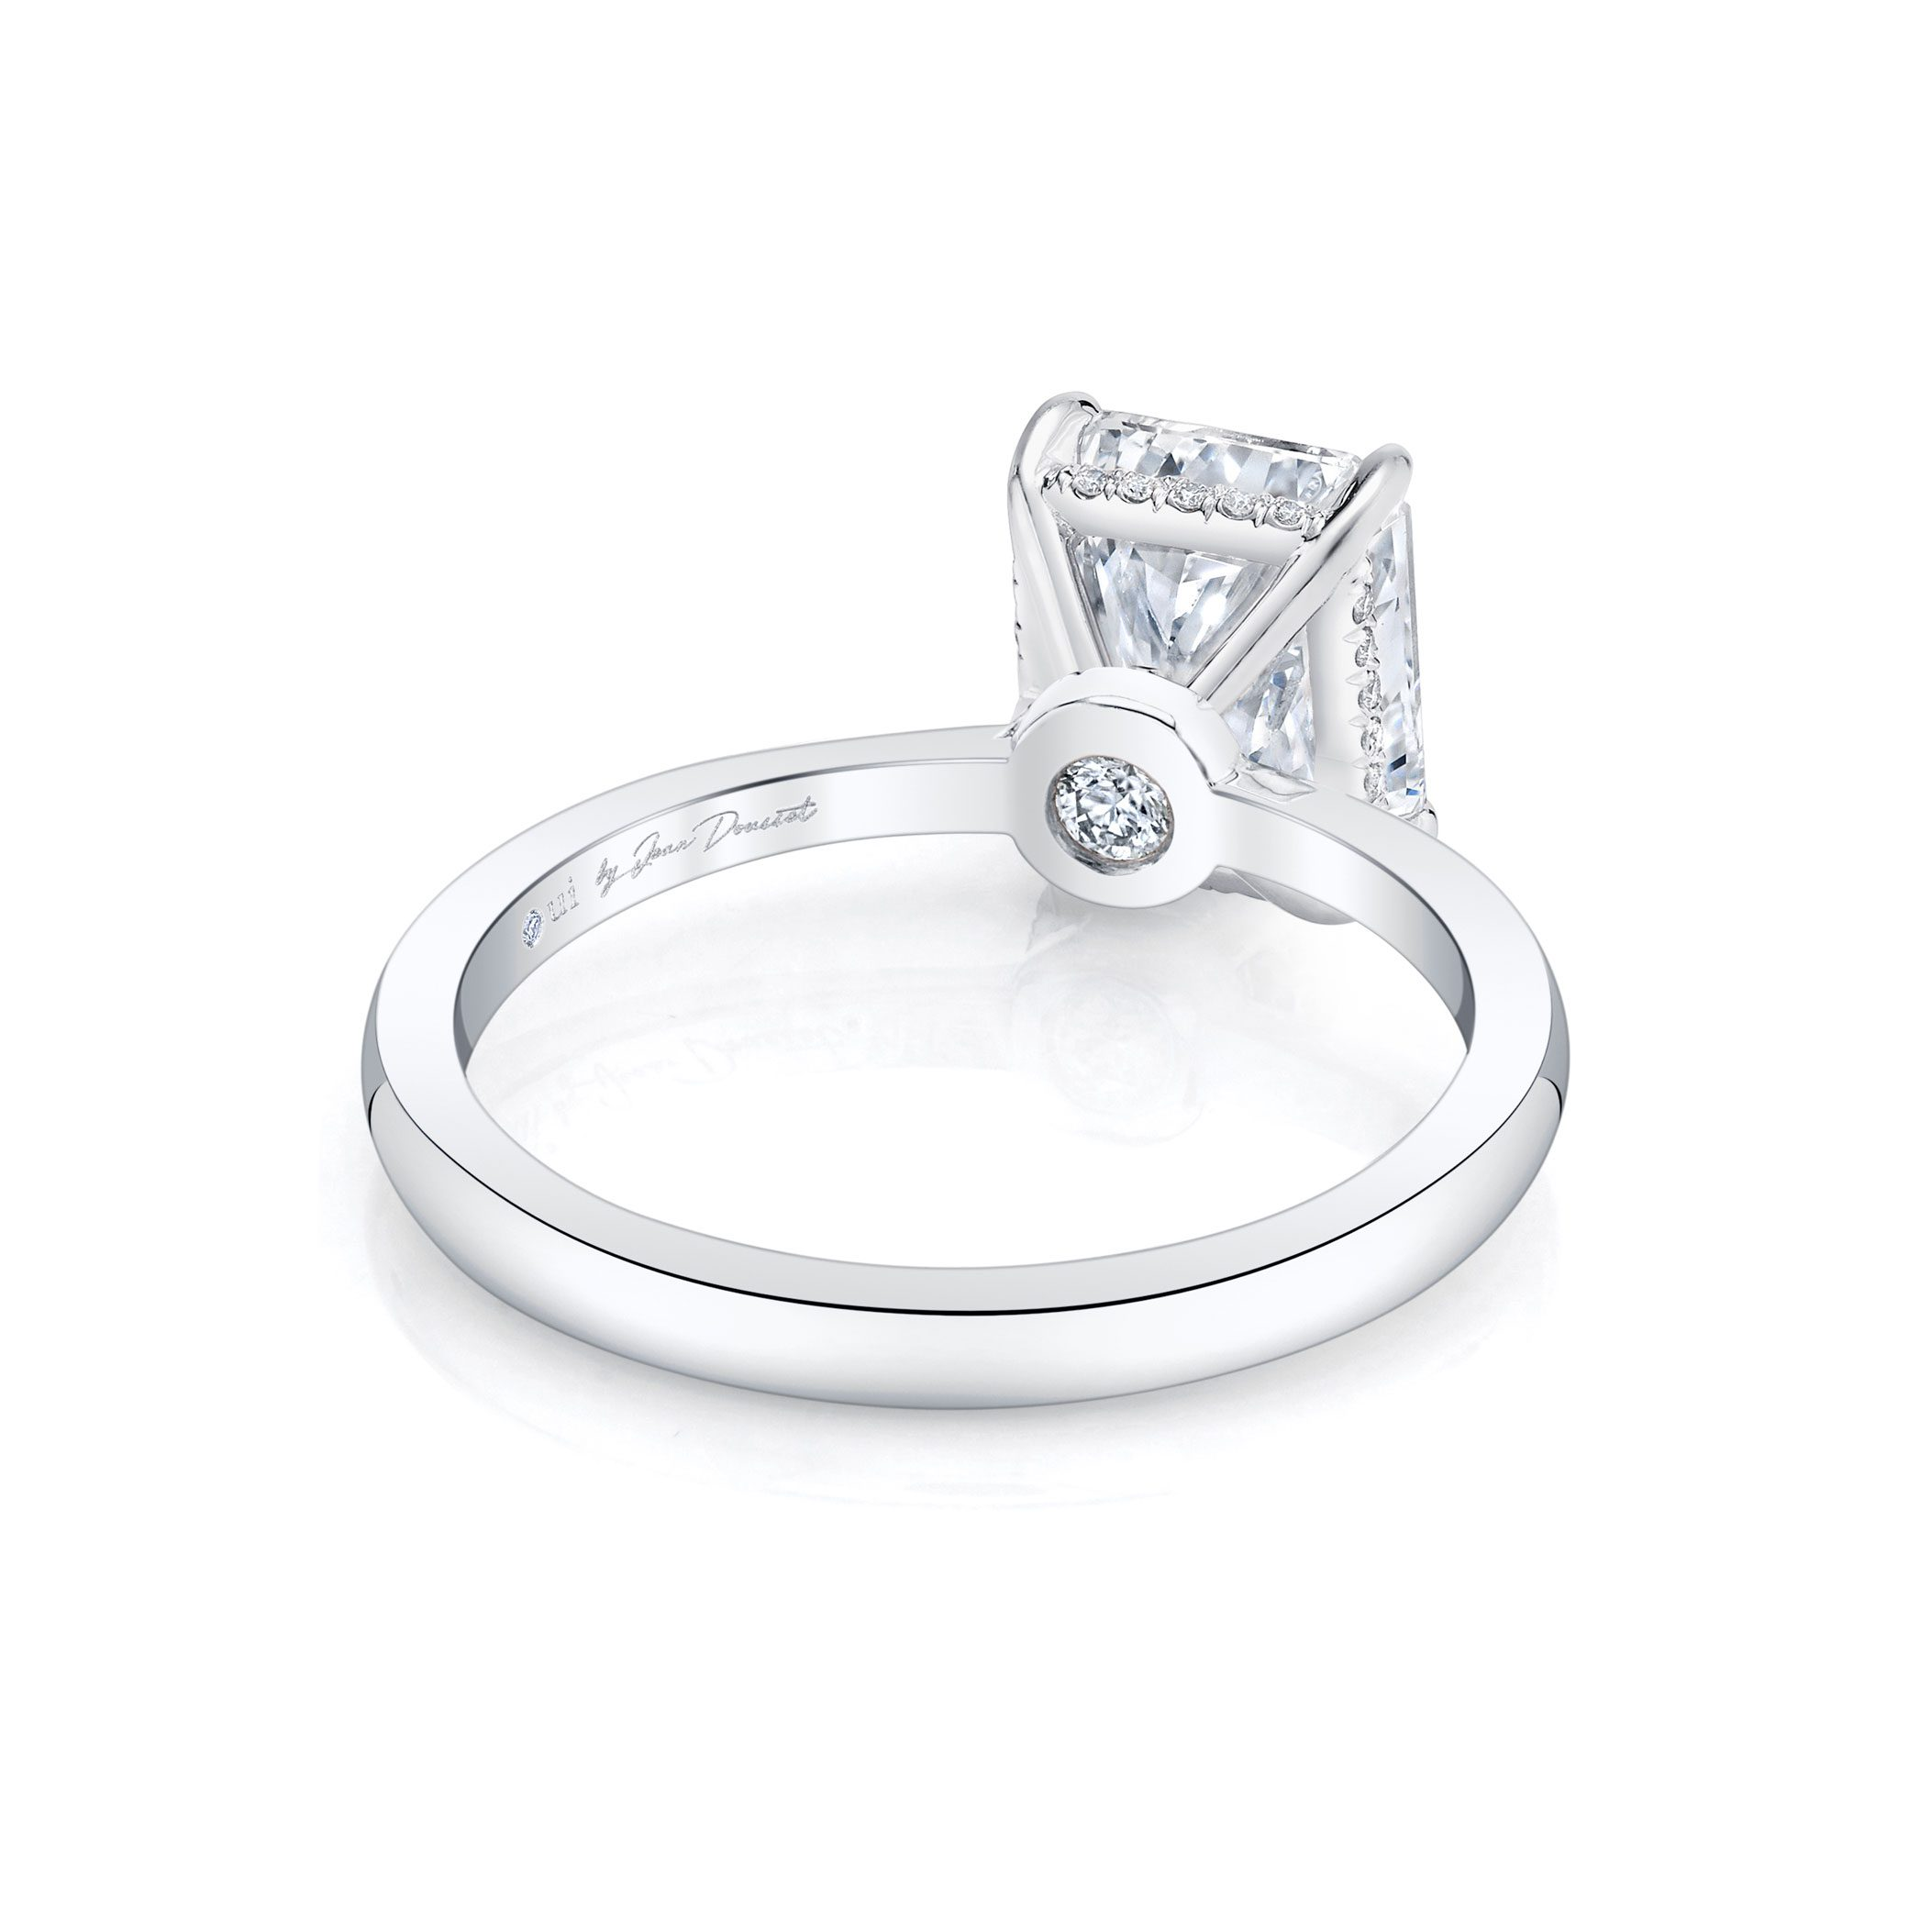 Colette Solitaire Radiant Cut Lab Grown Diamond Engagement Ring in 18k white gold band.